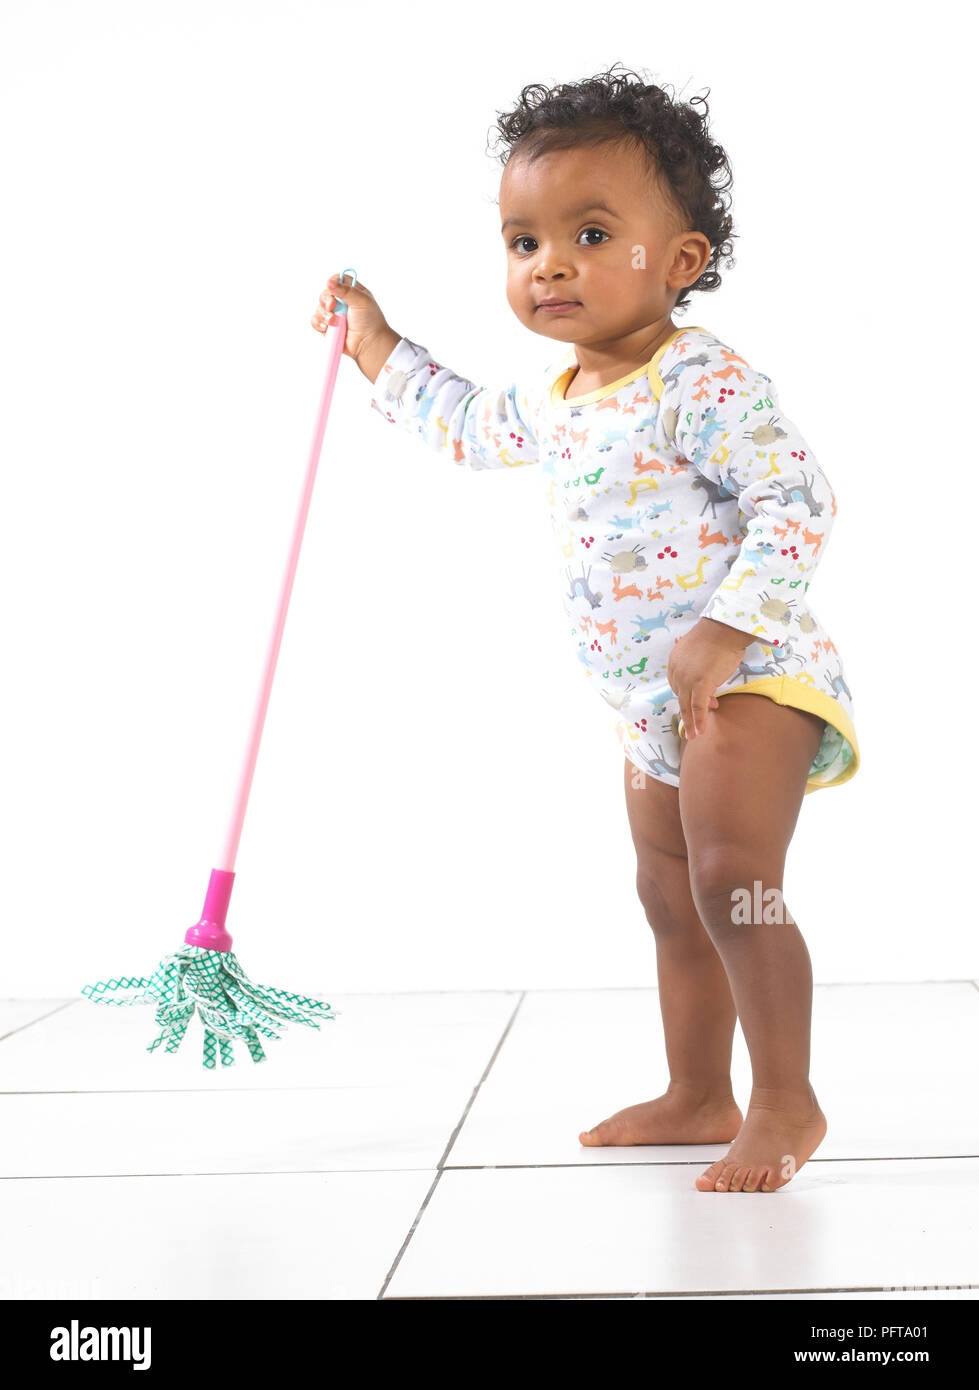 Girl standing holding toy mop, 18 months - Stock Image